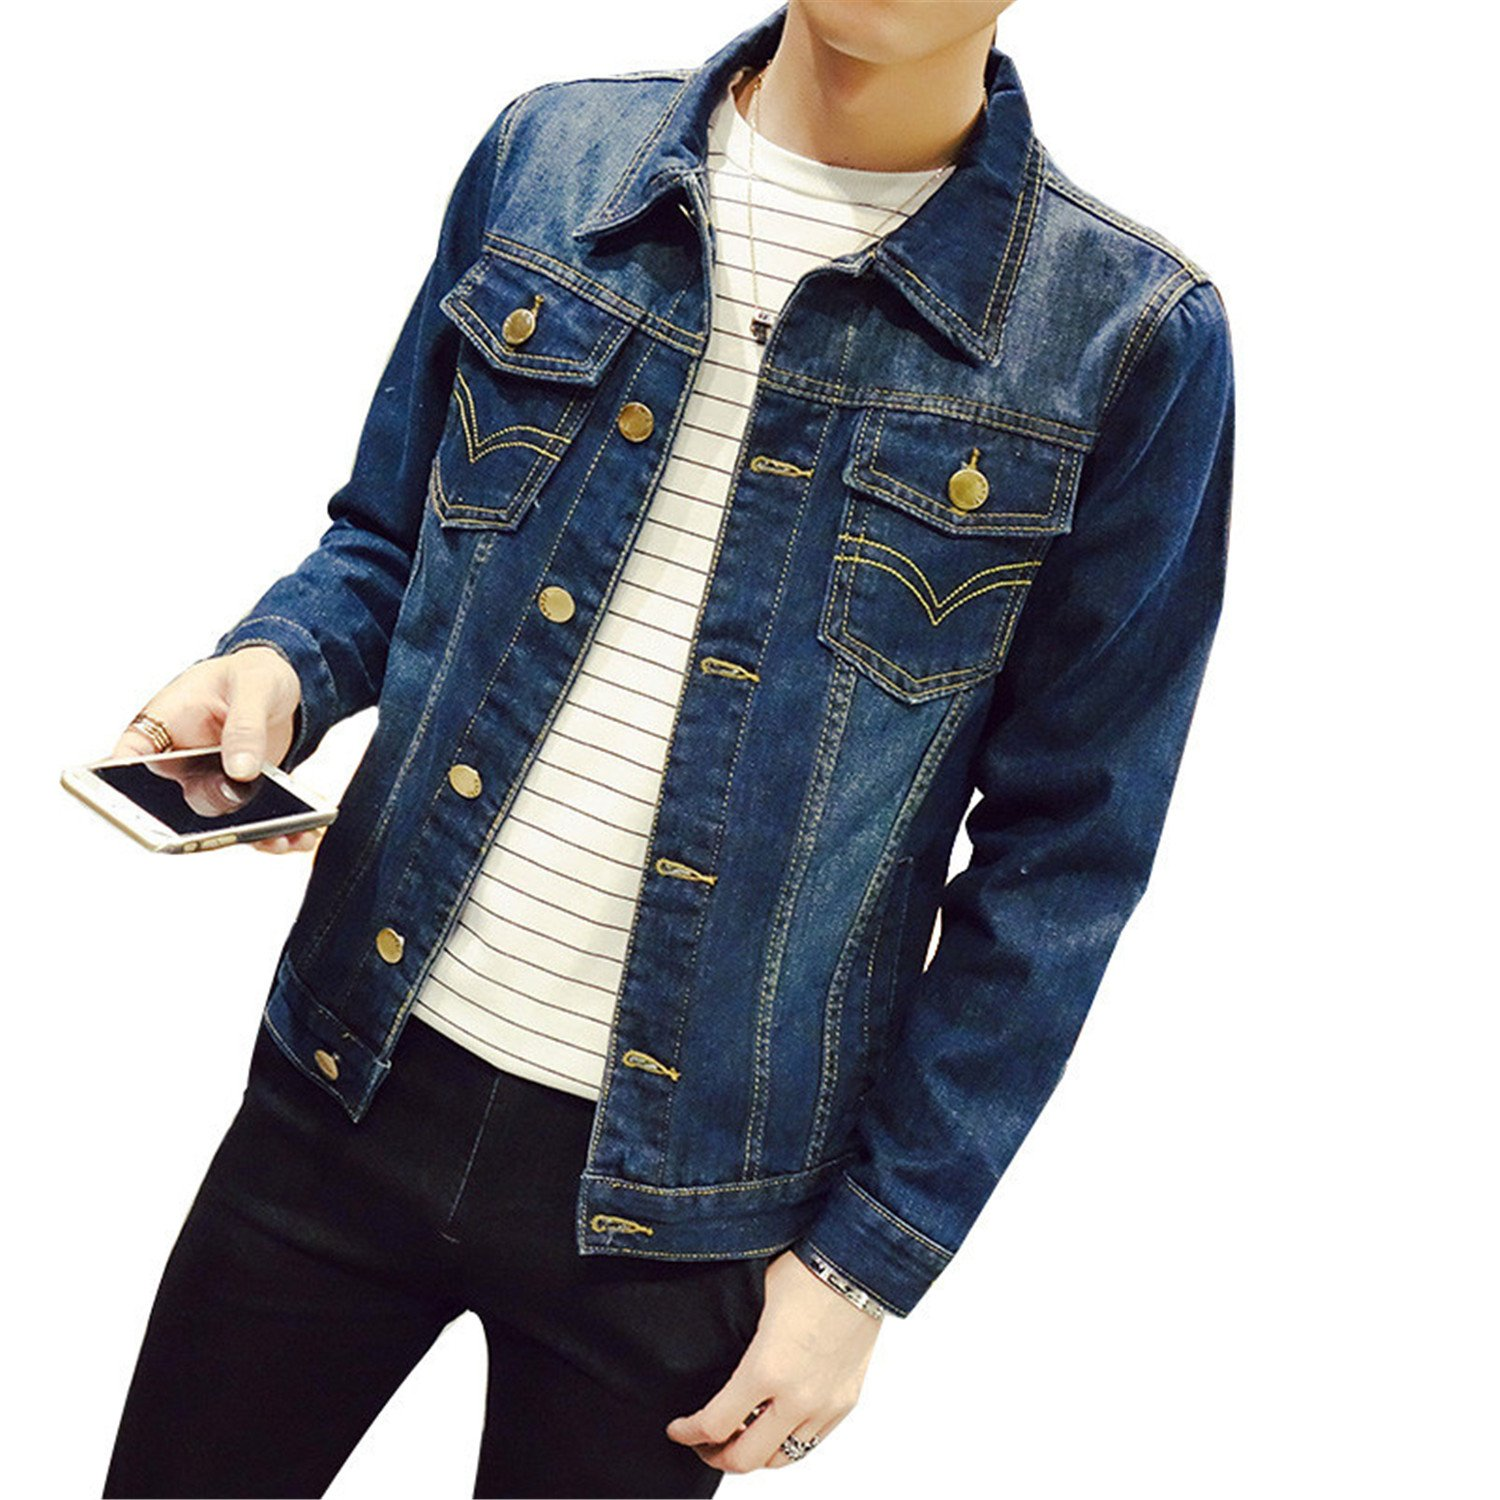 Catwomanfun Solid Slim Mens Denim Jacket Plus Size S-4XL 5XL Bomber Jacket Men Mens Jean Jacket Chaqueta Hombre at Amazon Mens Clothing store: